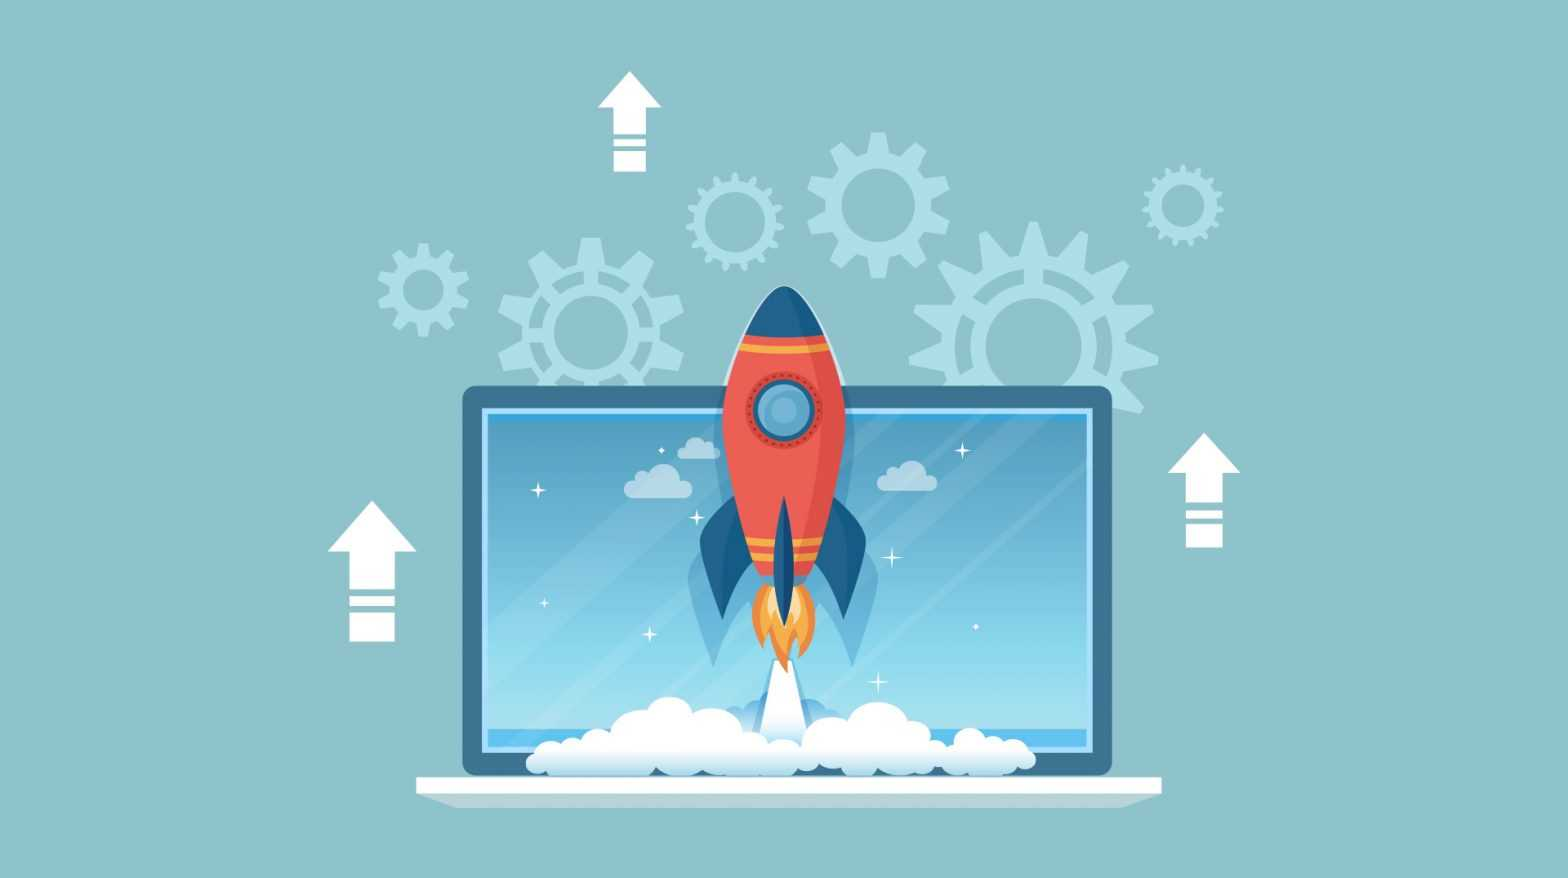 How To Develop A Successful Product And Why You Need Pre-Launch Marketing